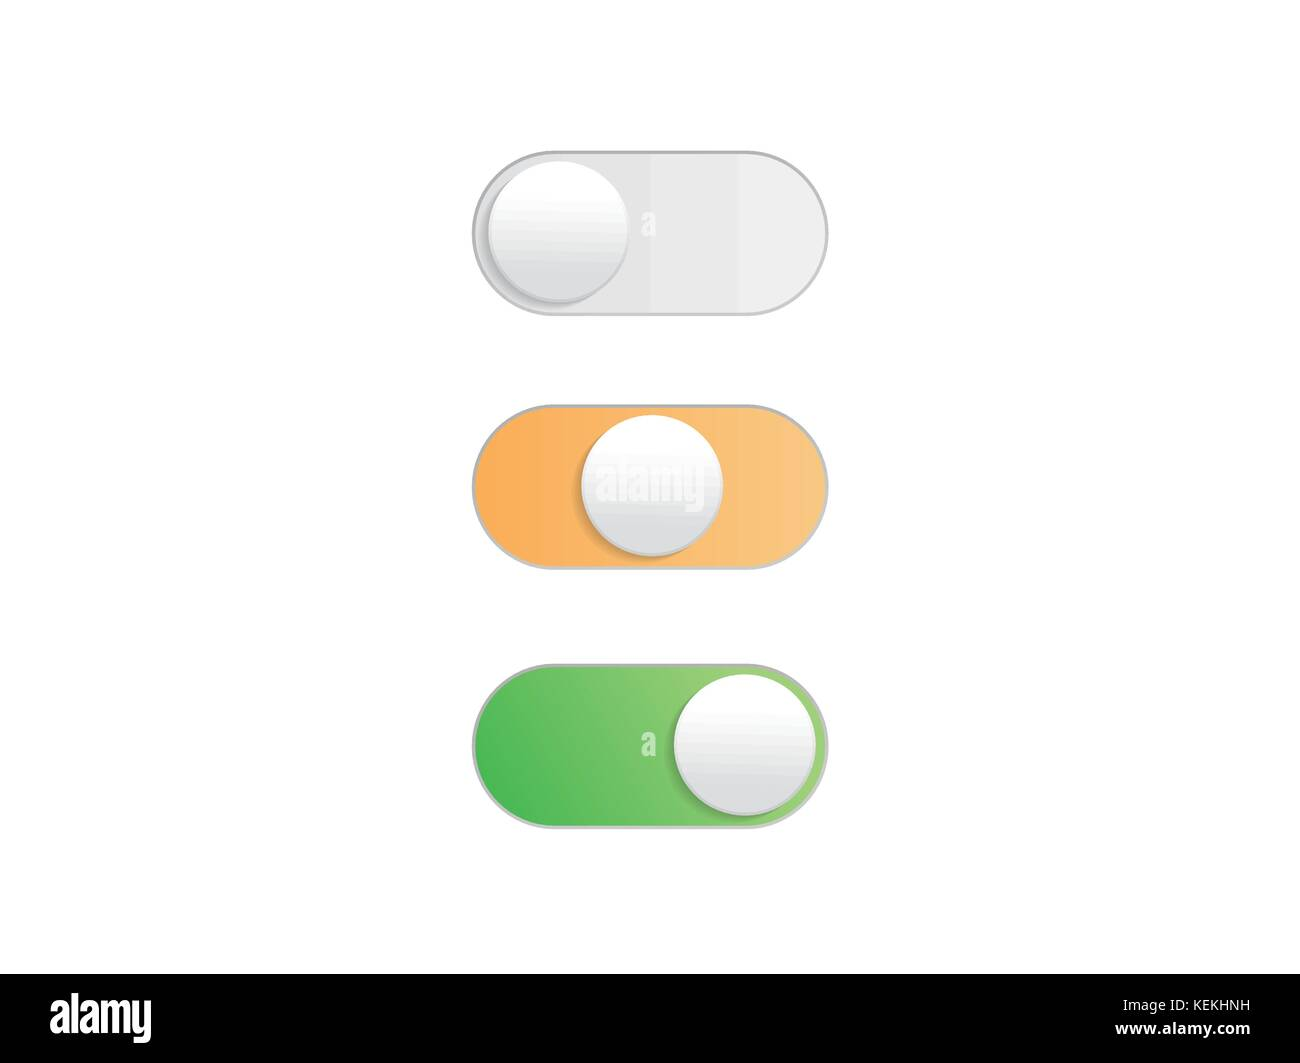 Professional gradient On Off Toggle switch button vectorformat - Stock Image